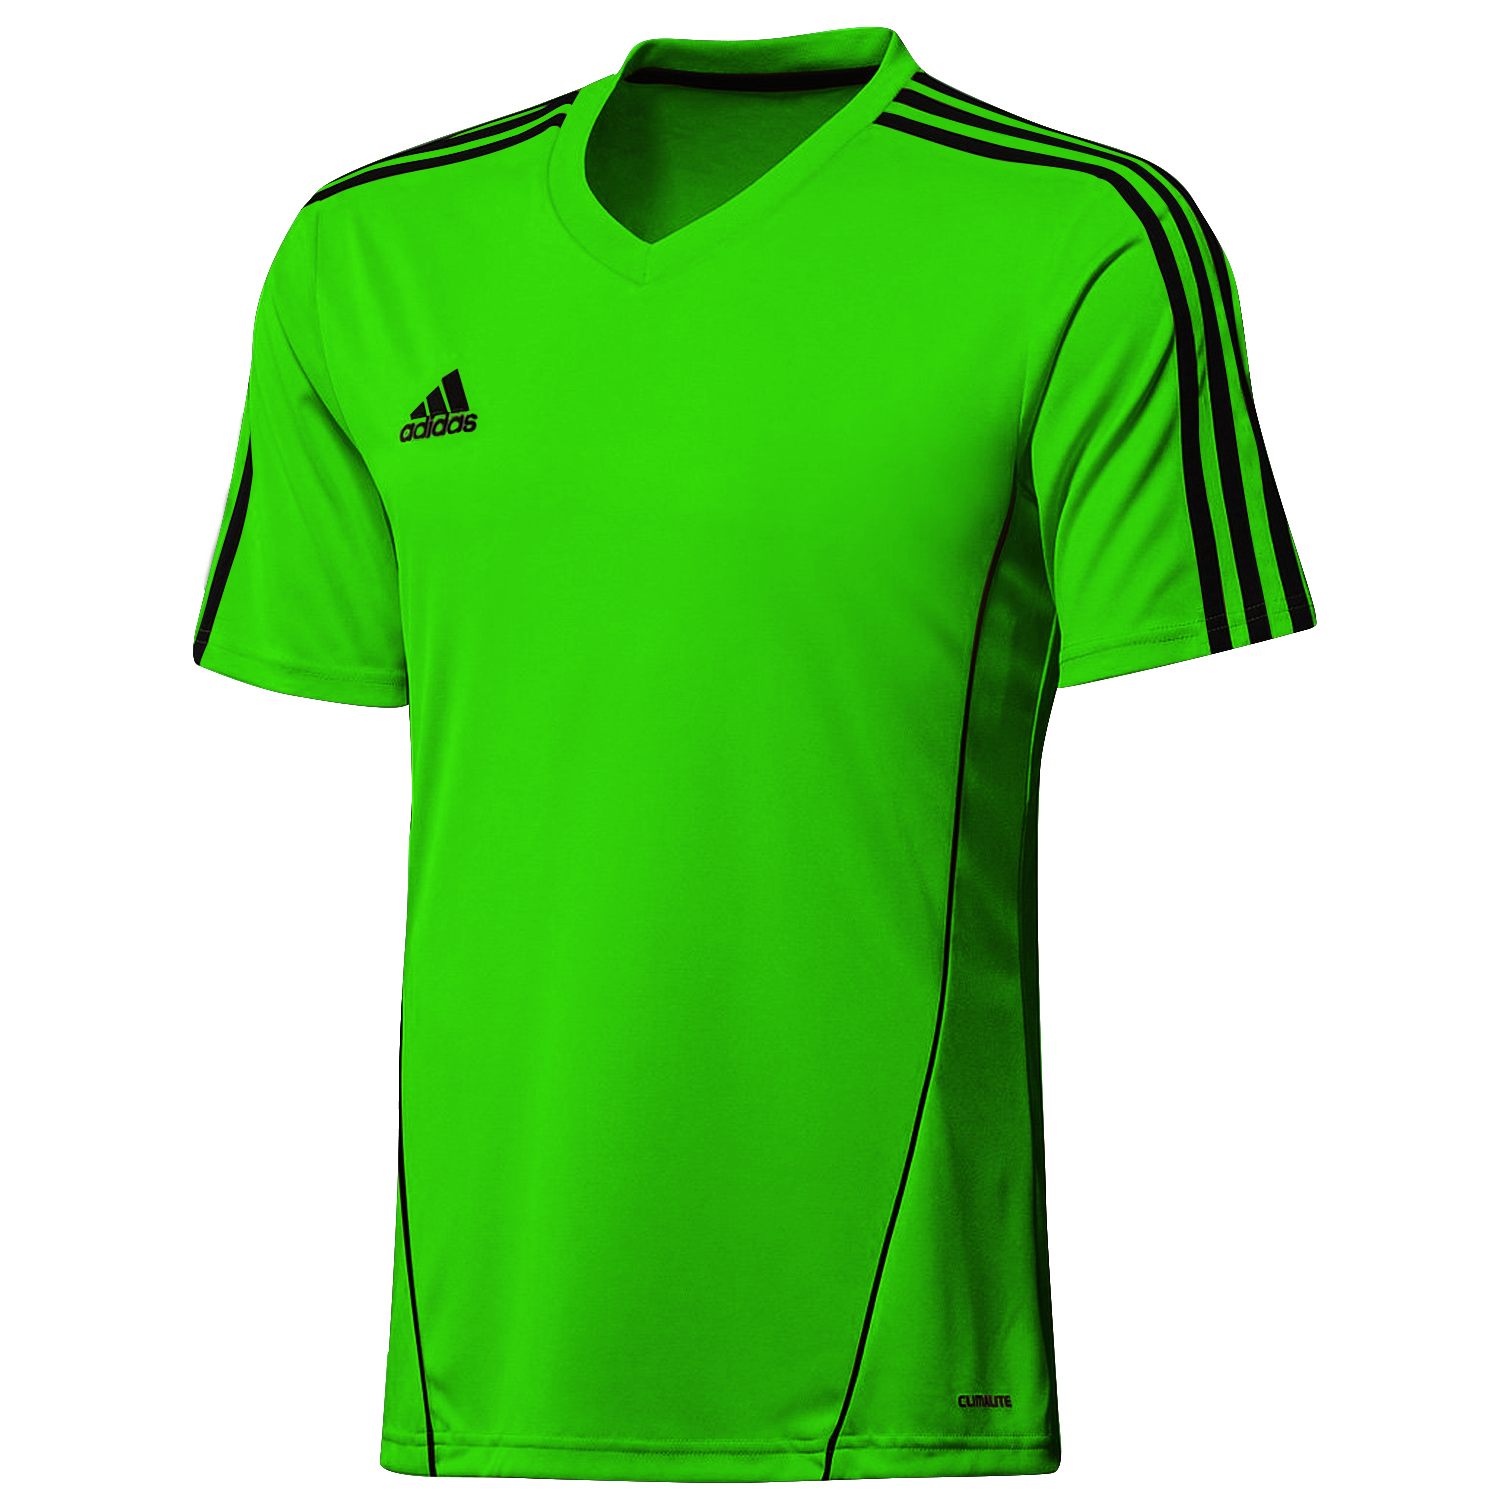 adidas climalite mens estro football training top jersey t shirt gym sport run ebay. Black Bedroom Furniture Sets. Home Design Ideas